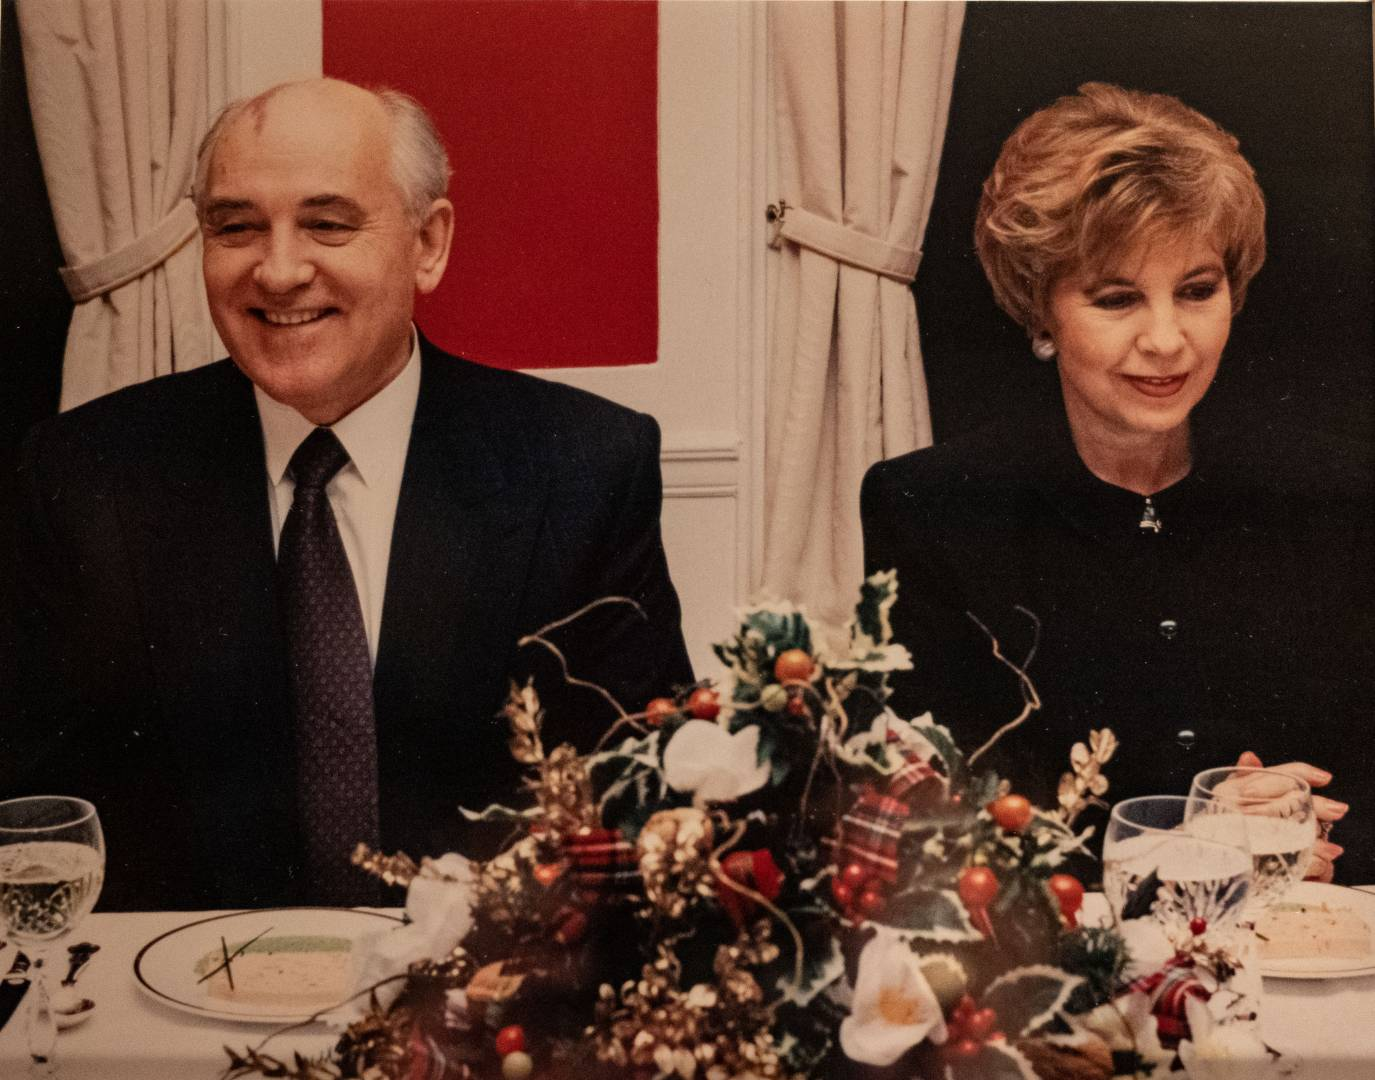 Mikhail and Raisa Gorbechev at dinner in your editor's former Little College Street offices.